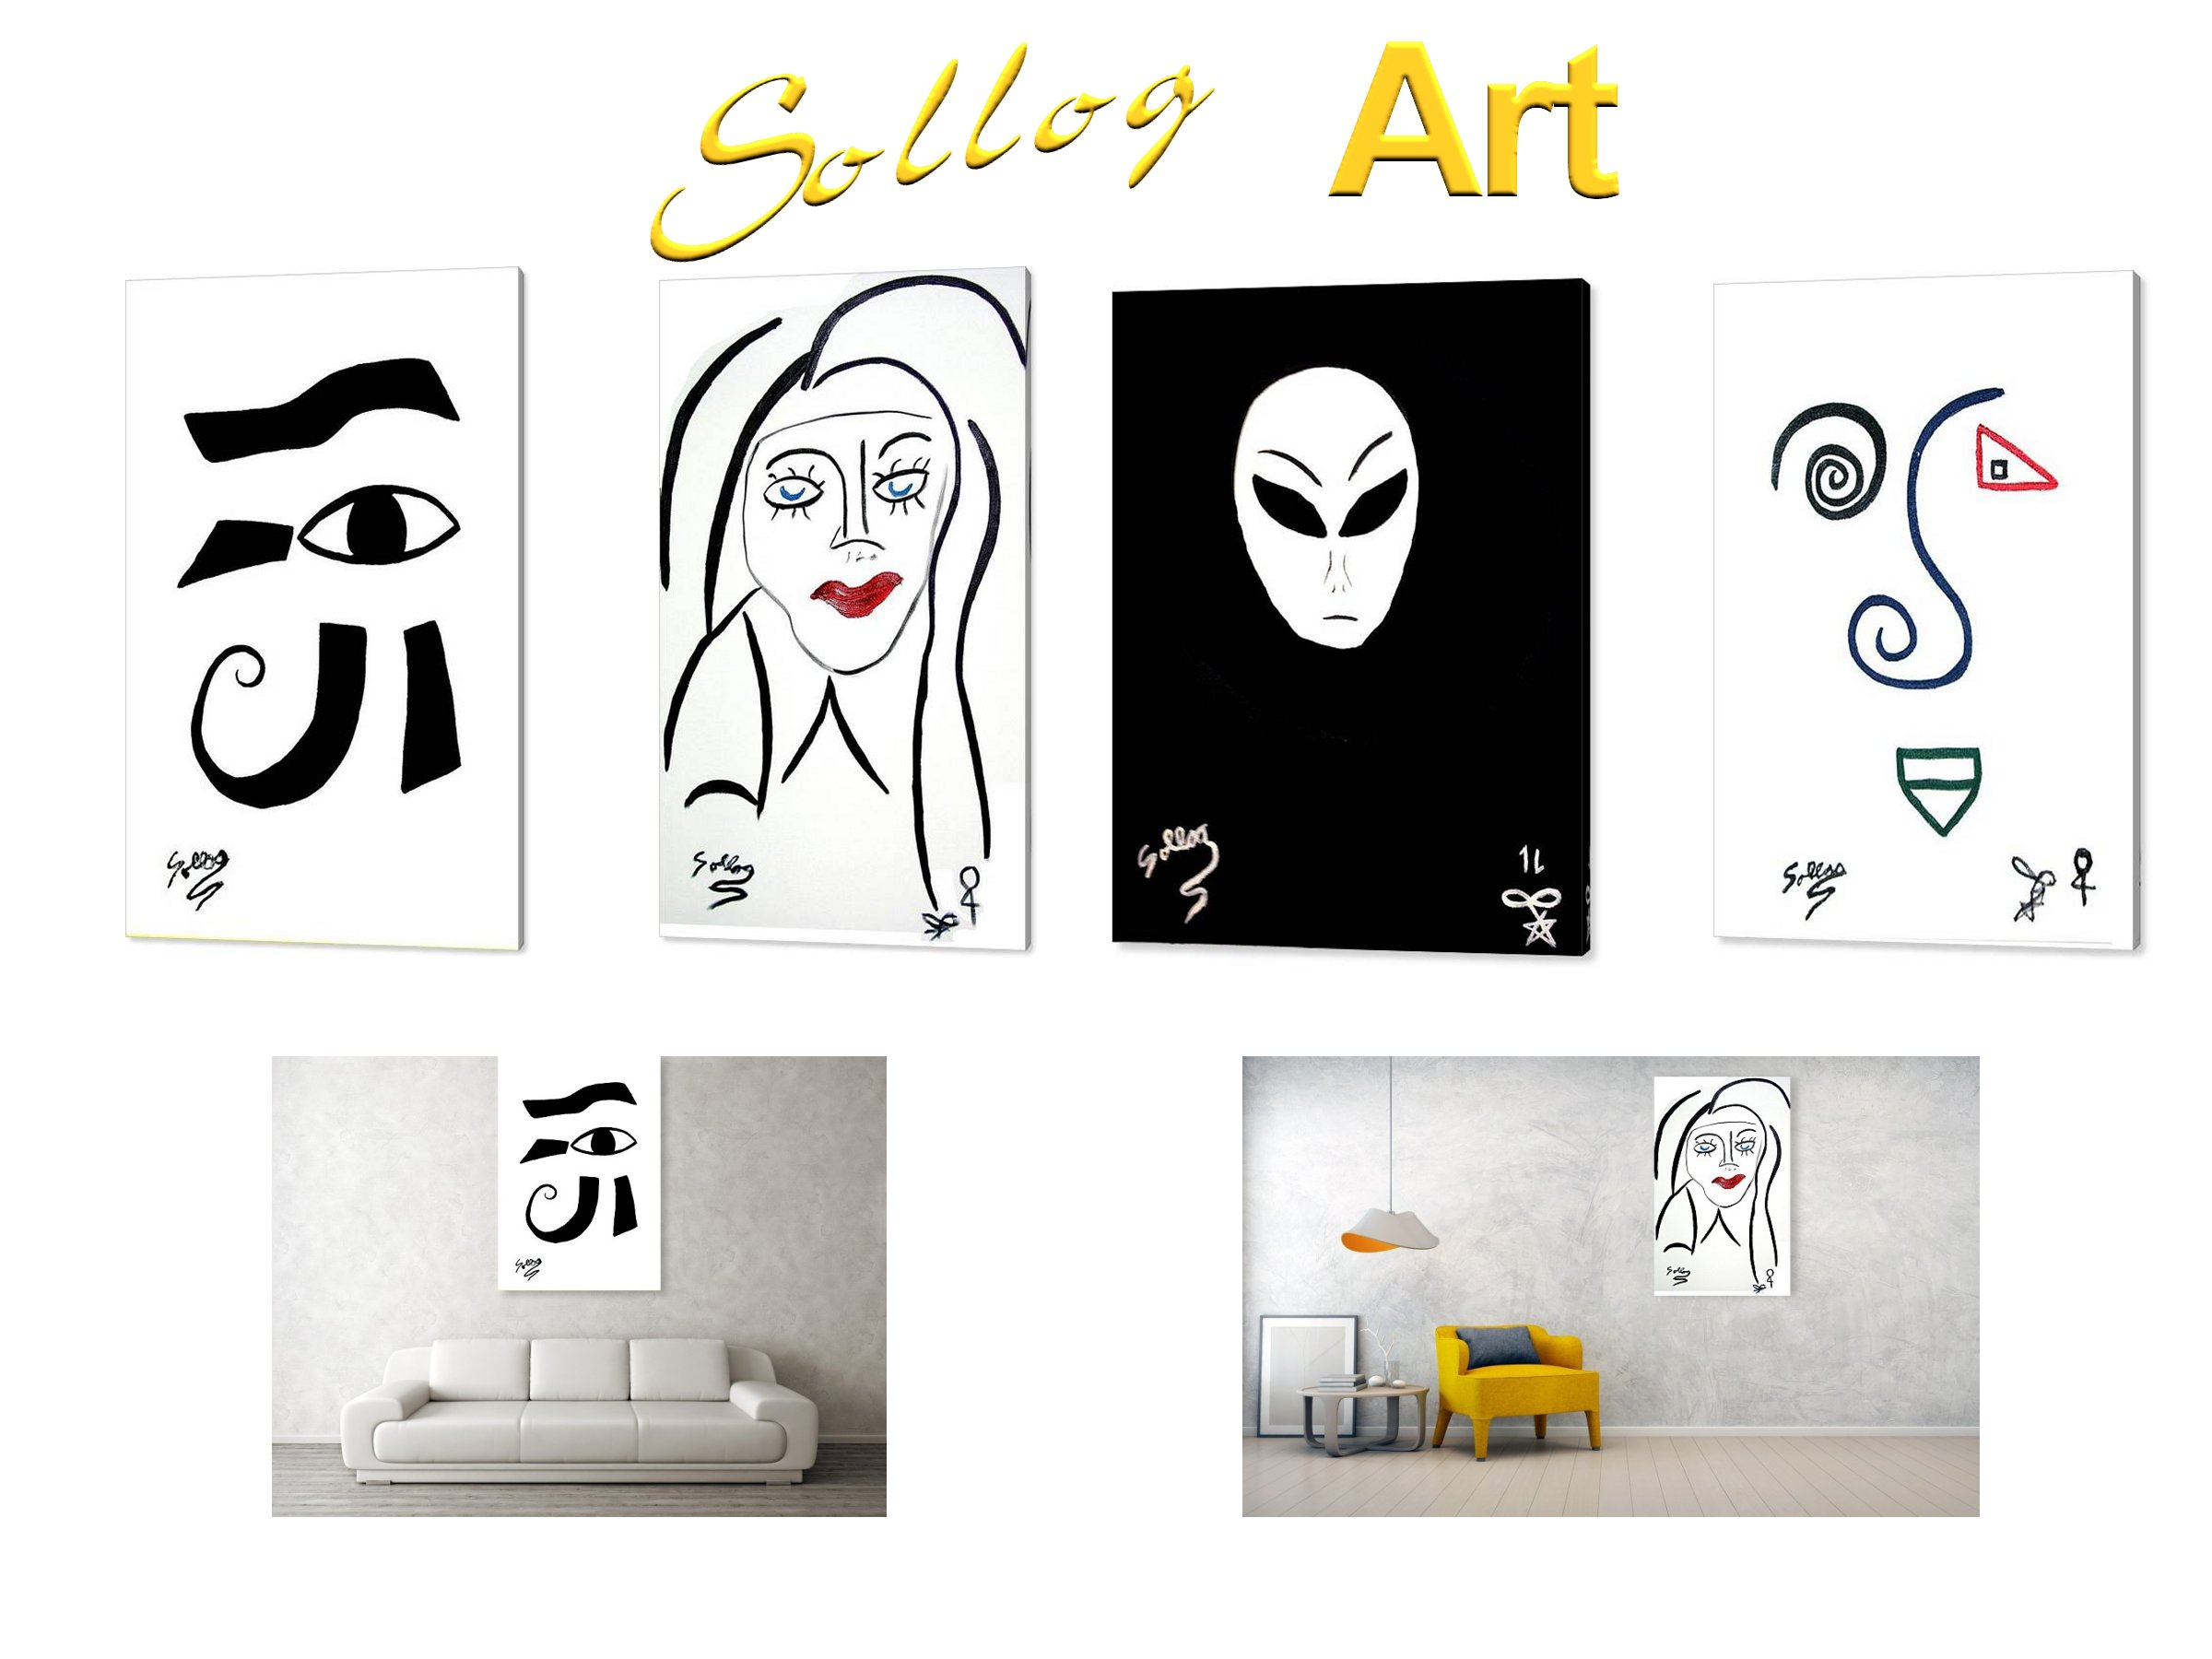 Sollog Art and Prints